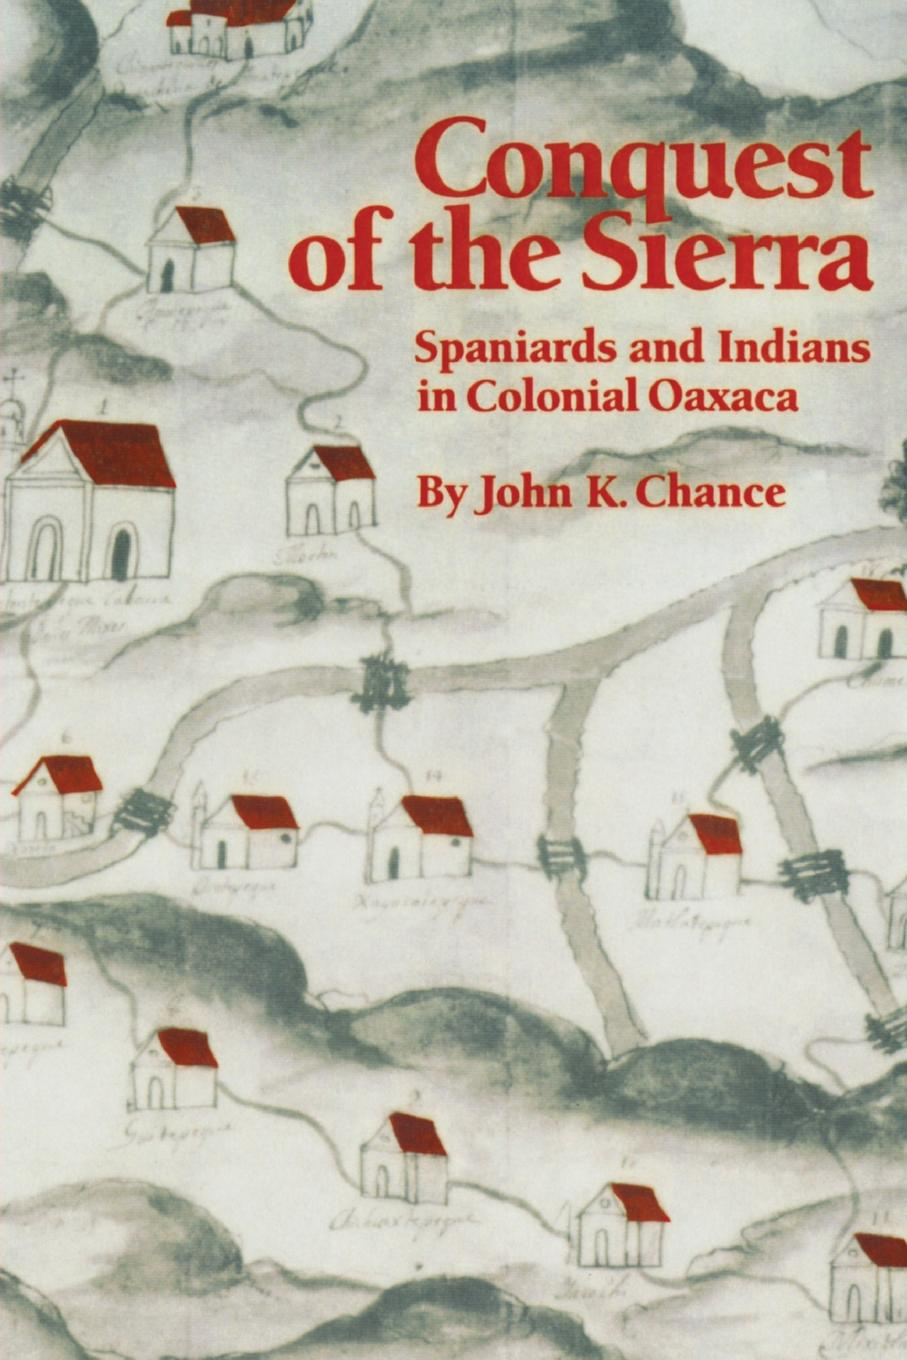 John K. Chance Conquest of the Sierra. Spaniards and Indians in Colonial Oaxaca robert grant watson spanish and portuguese south america during the colonial period vol 1